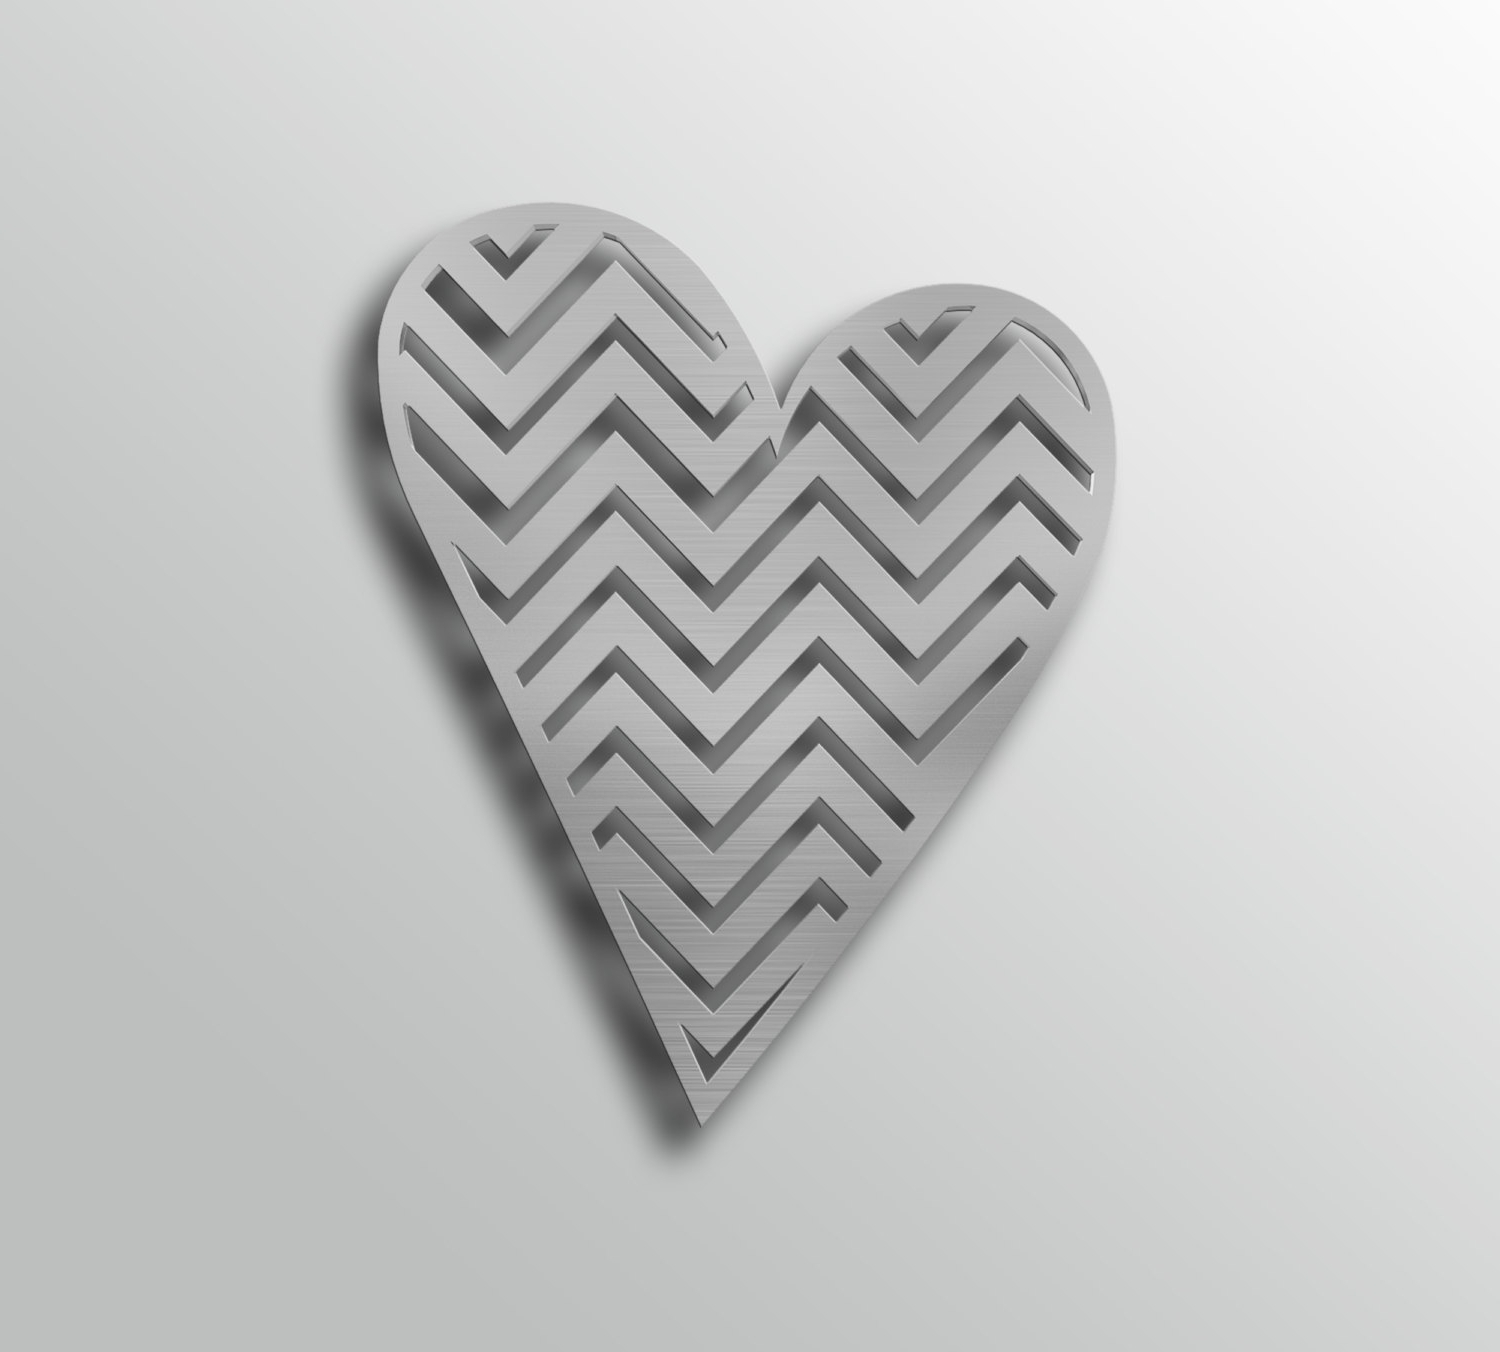 Heart Shaped Metal Wall Art With Trendy Heart Wall Art, Chevron Pattern, Metal Wall Art, Heart Shaped Wall (View 3 of 15)